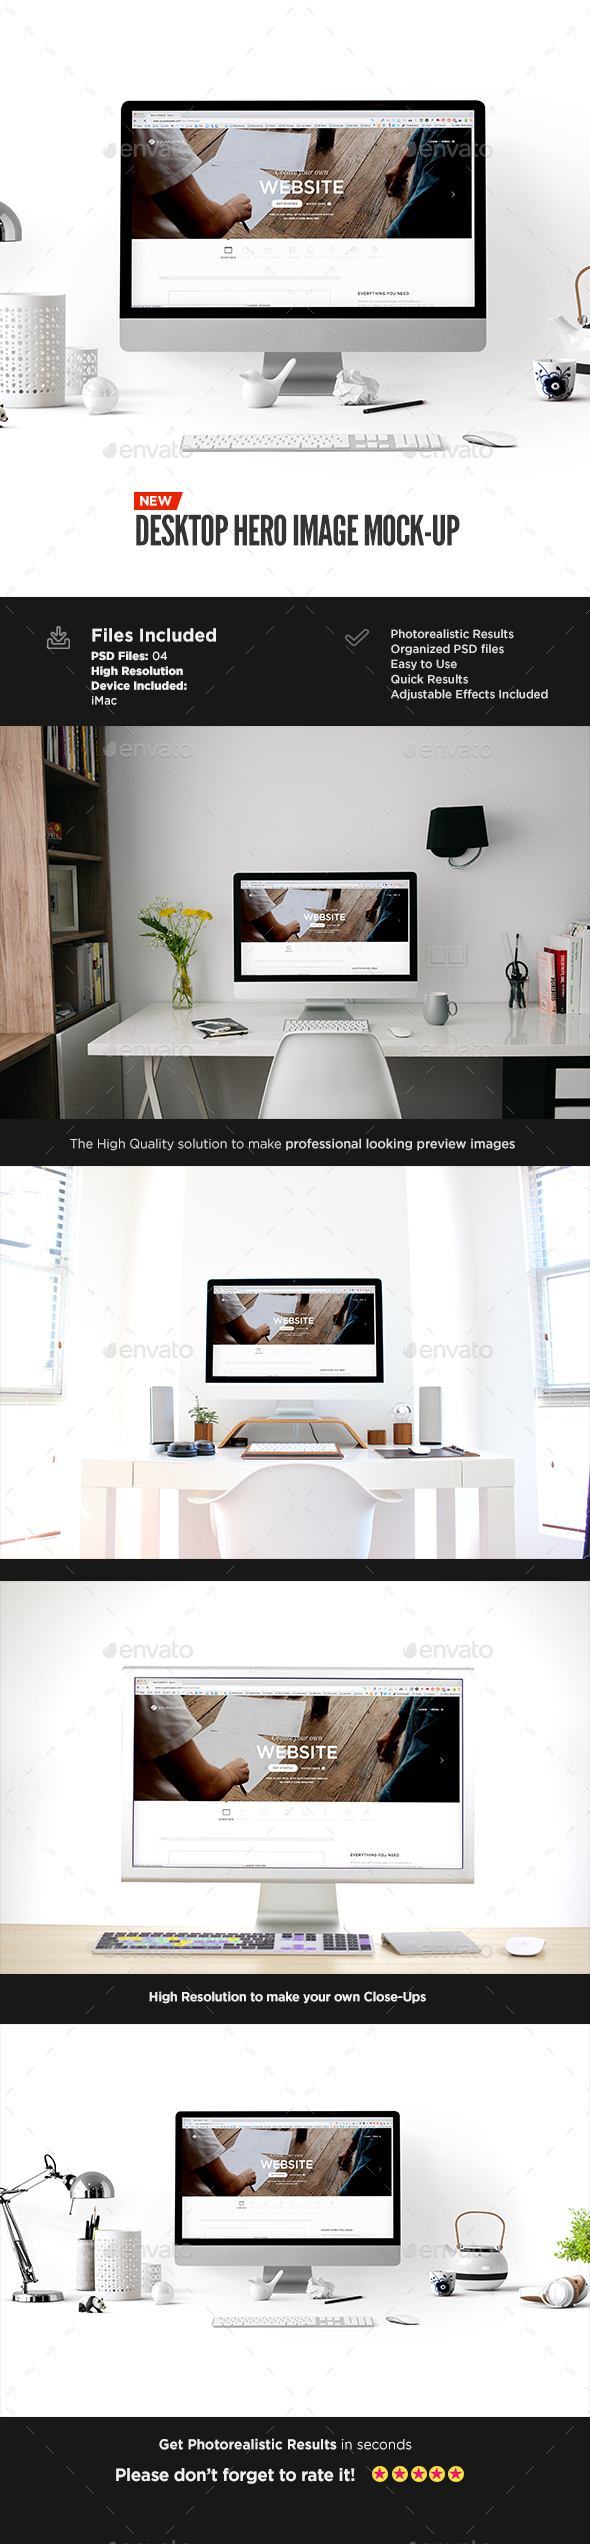 Desktop Display Mock-Up | Hero Image Edition - Displays Product Mock-Ups